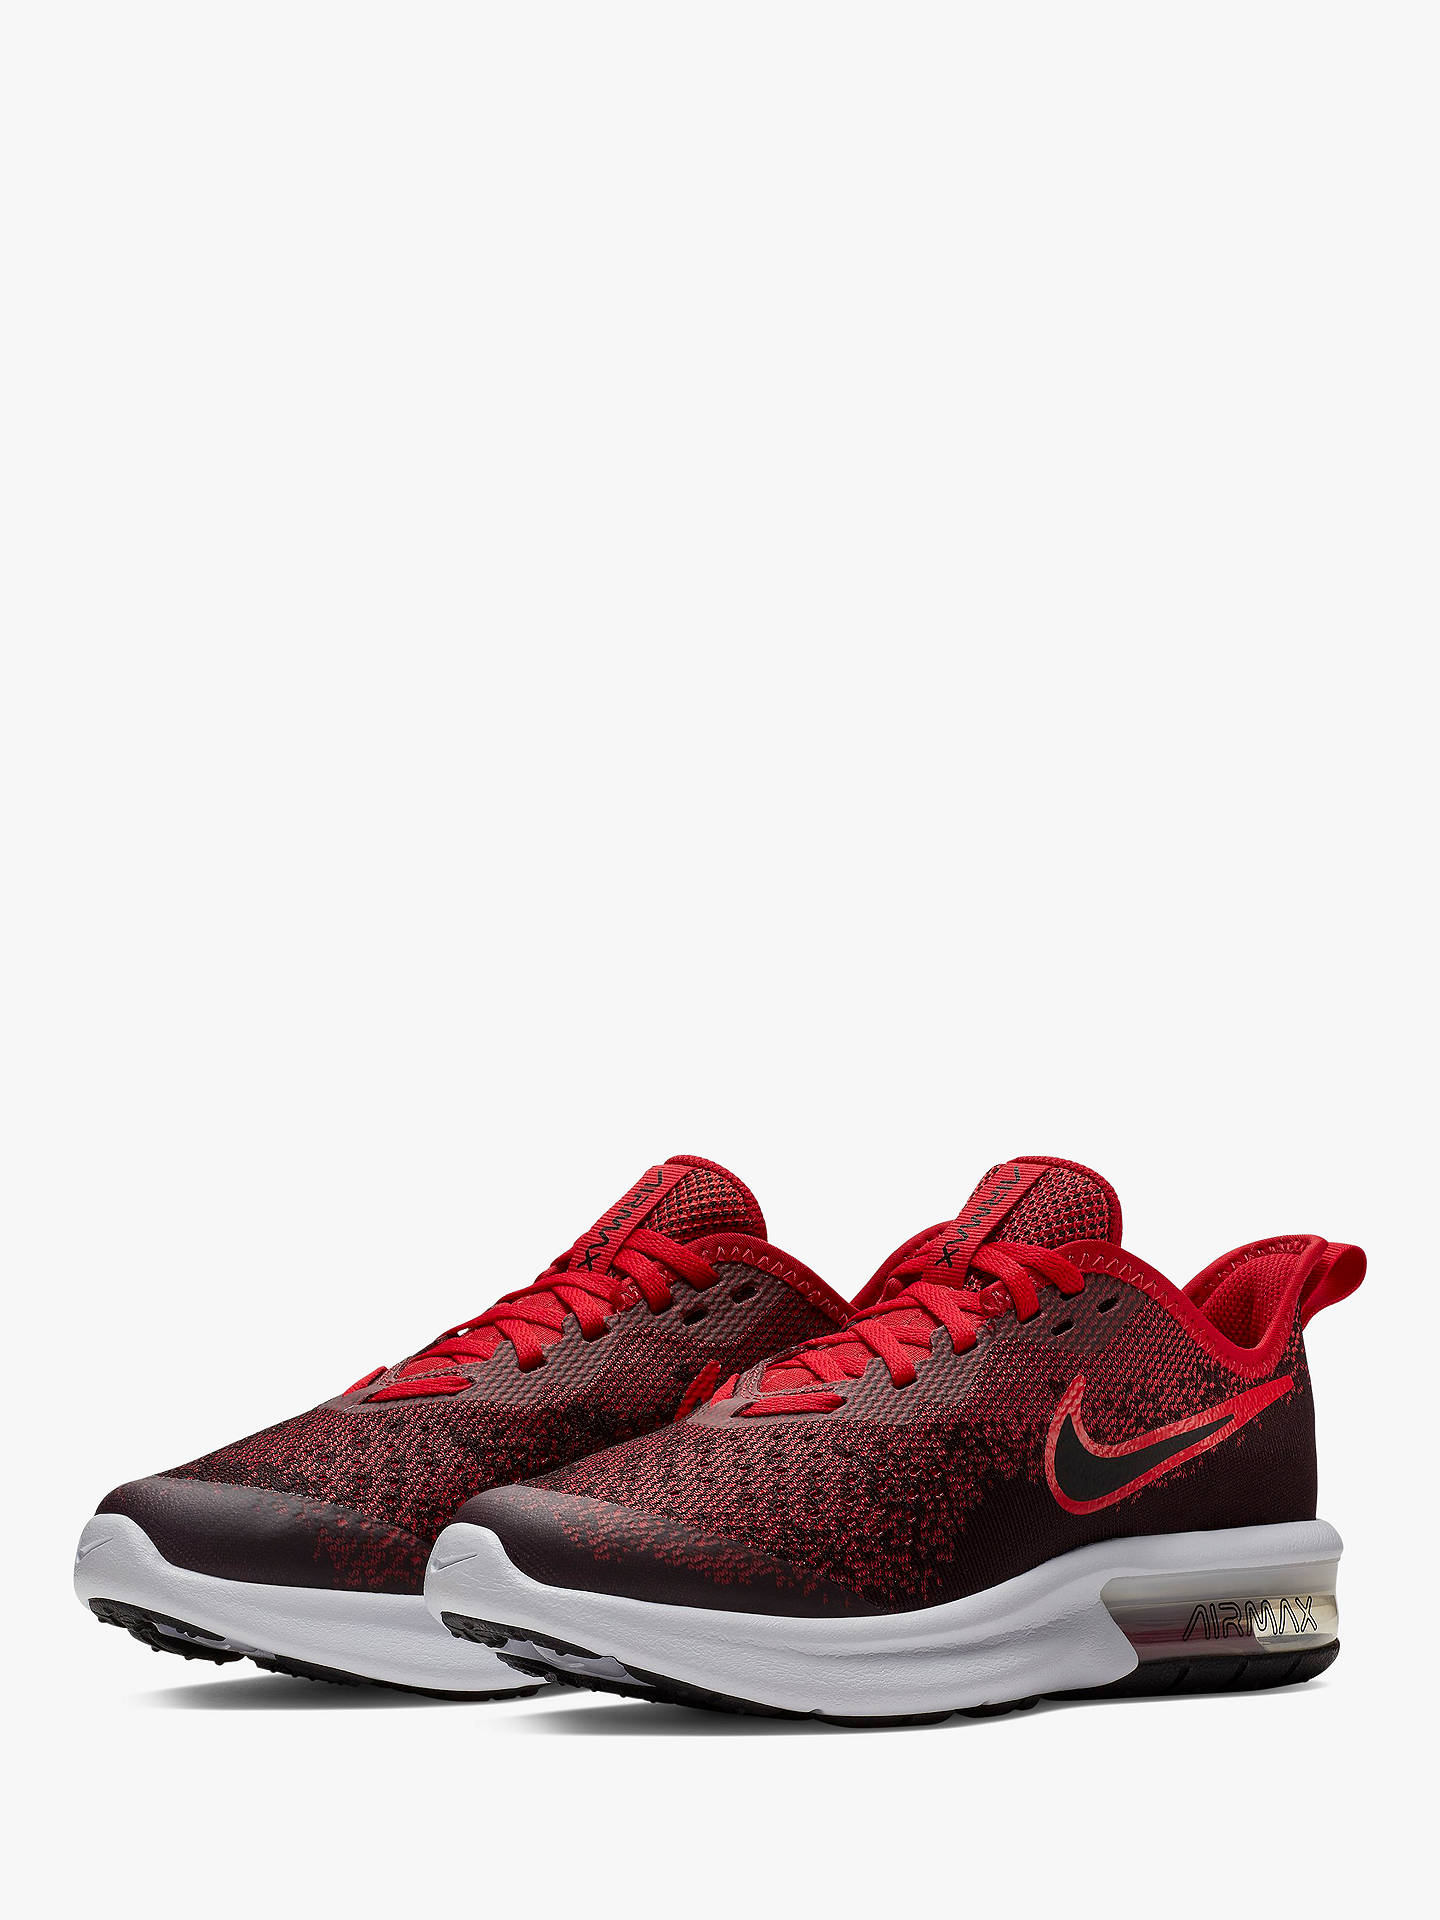 sports shoes 567ba 6590c ... Buy Nike Children s Air Max Sequent 4 Trainers, Black Red, 4 Online at  ...